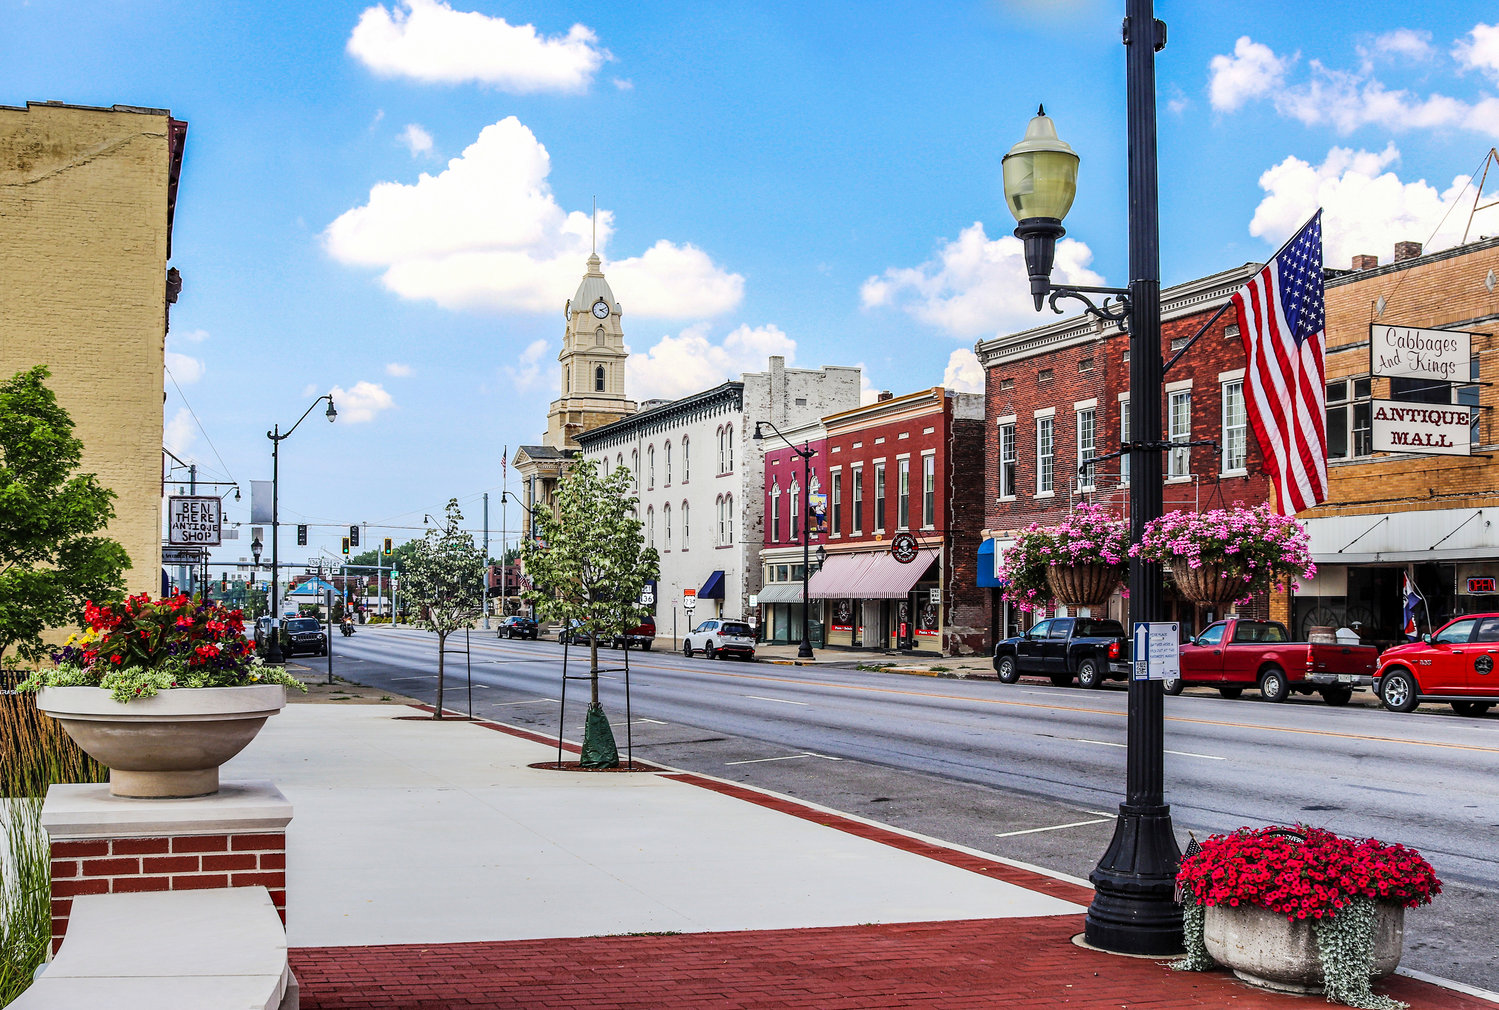 Downtown Crawfordsville as seen in the summer of 2020 looking north along South Washington Street.